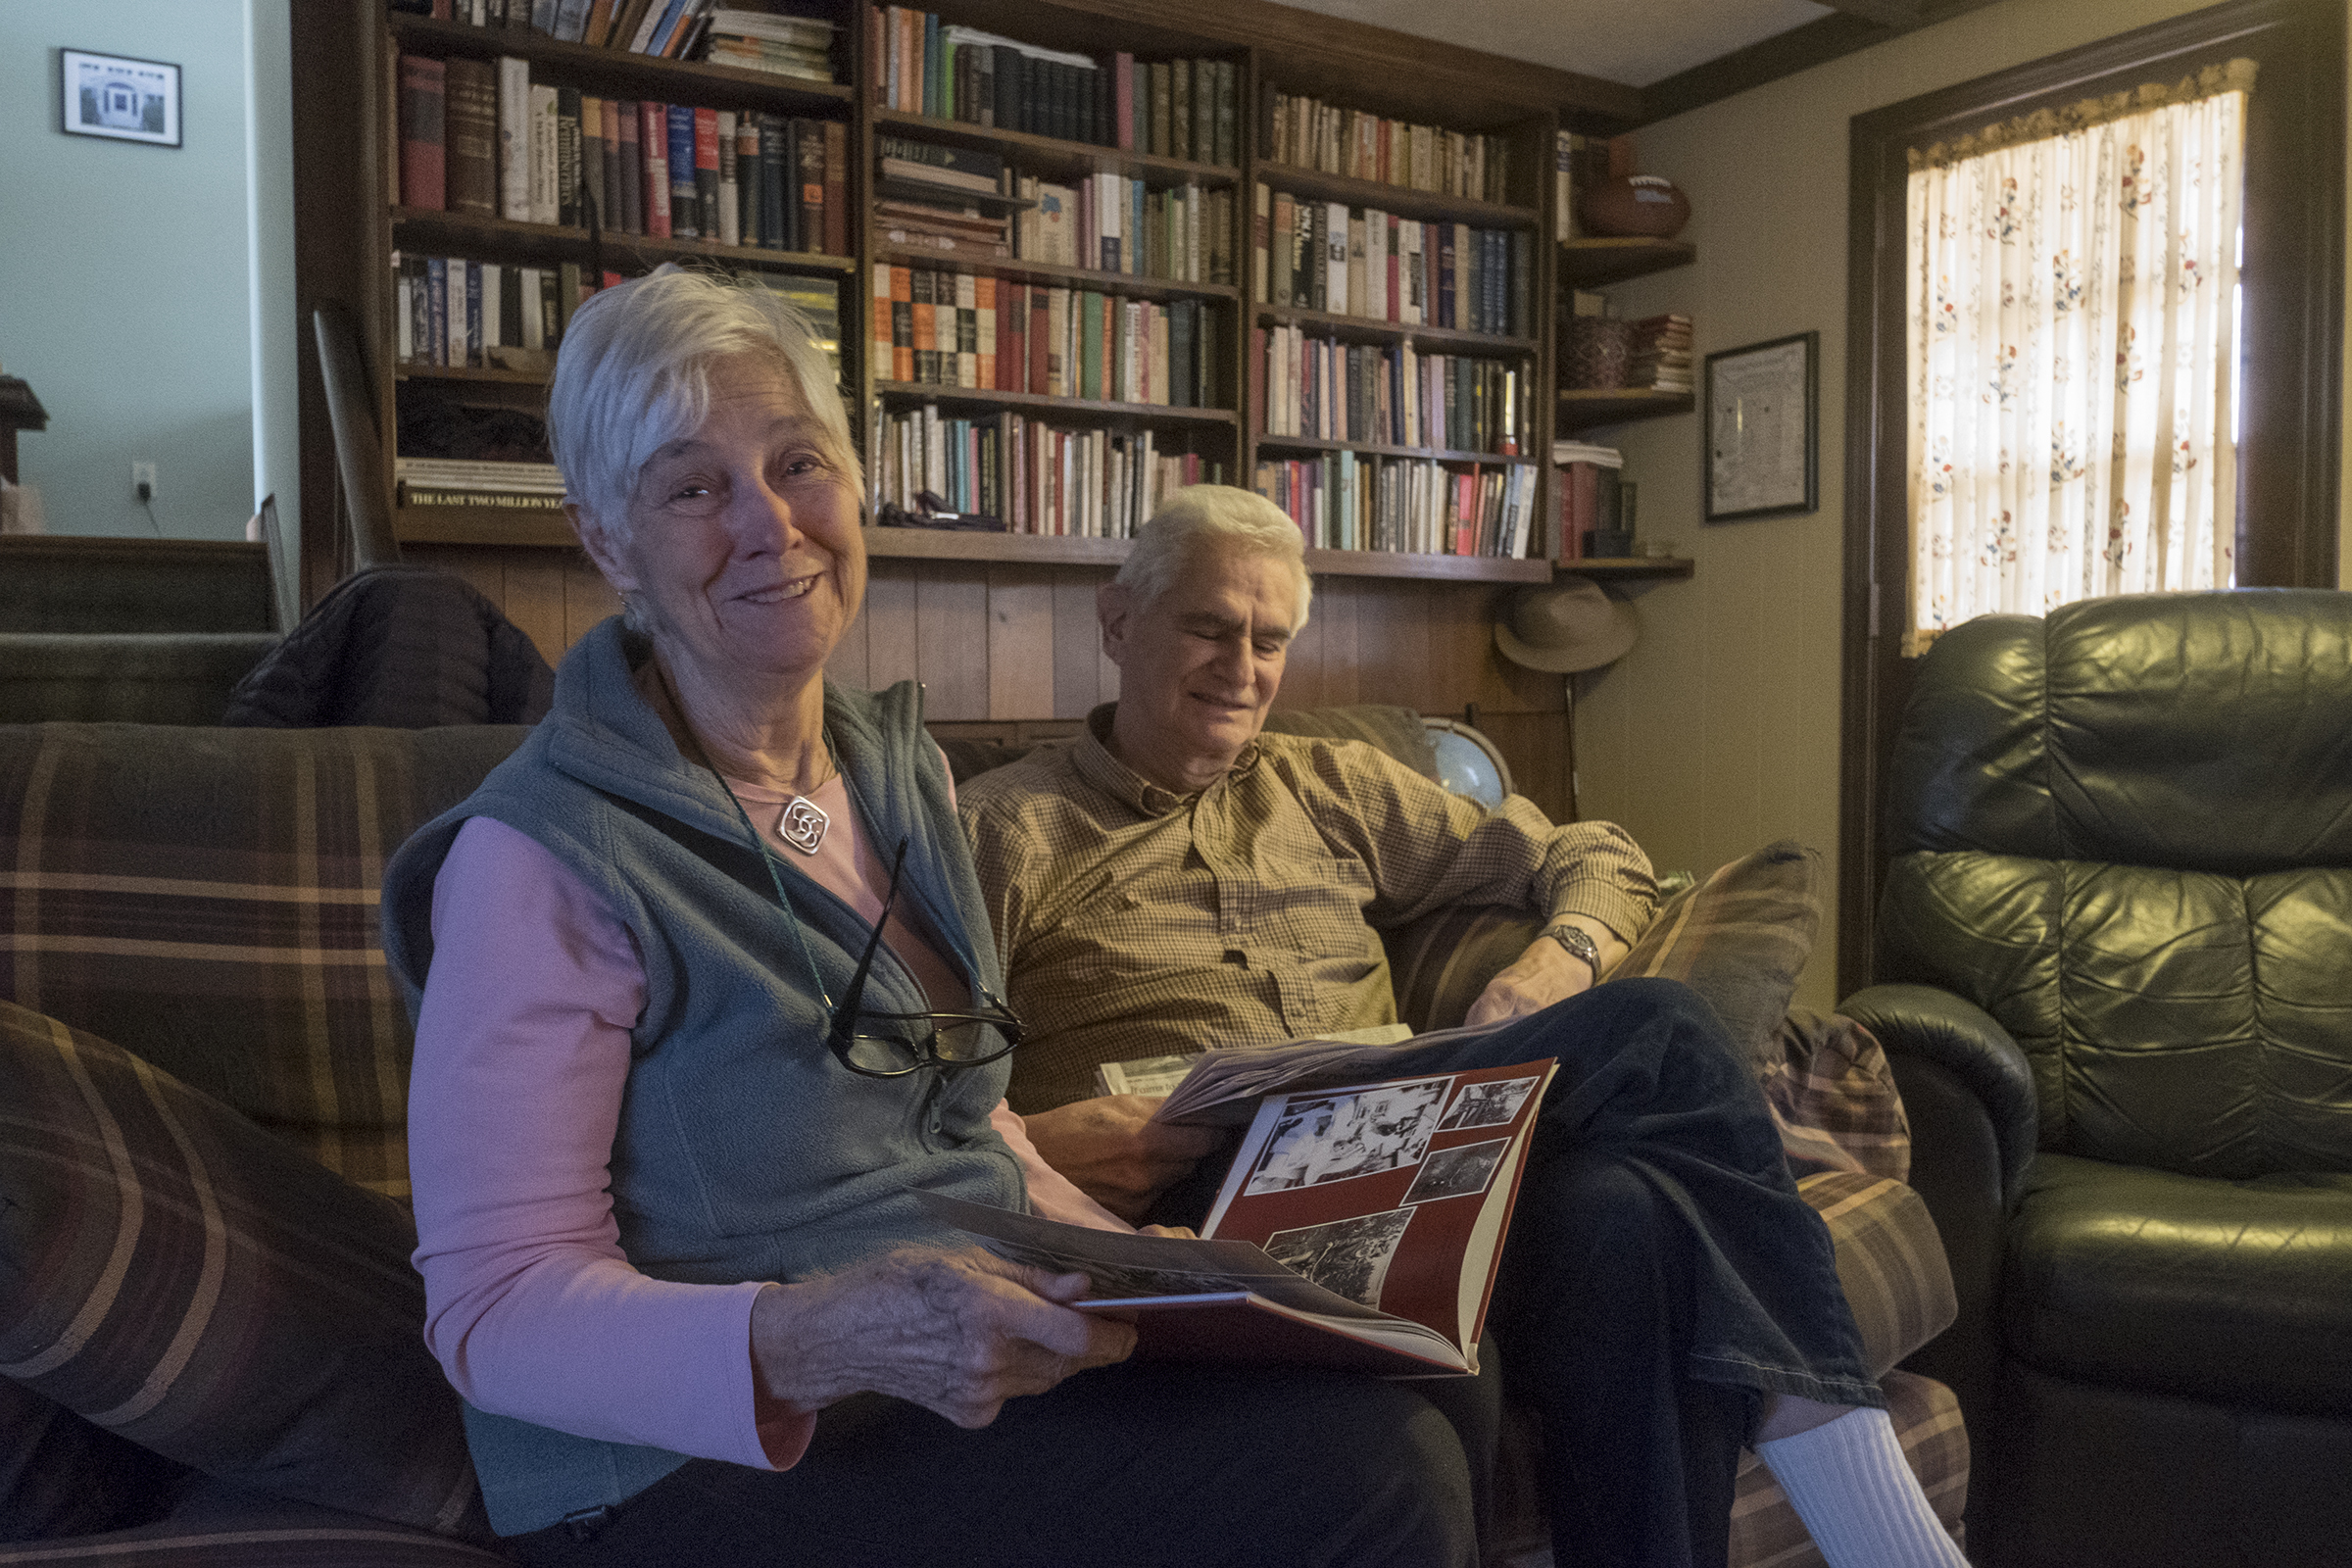 Ron, 81, and Joy Pott, 80 relax in their family room as they watch a college basketball game.